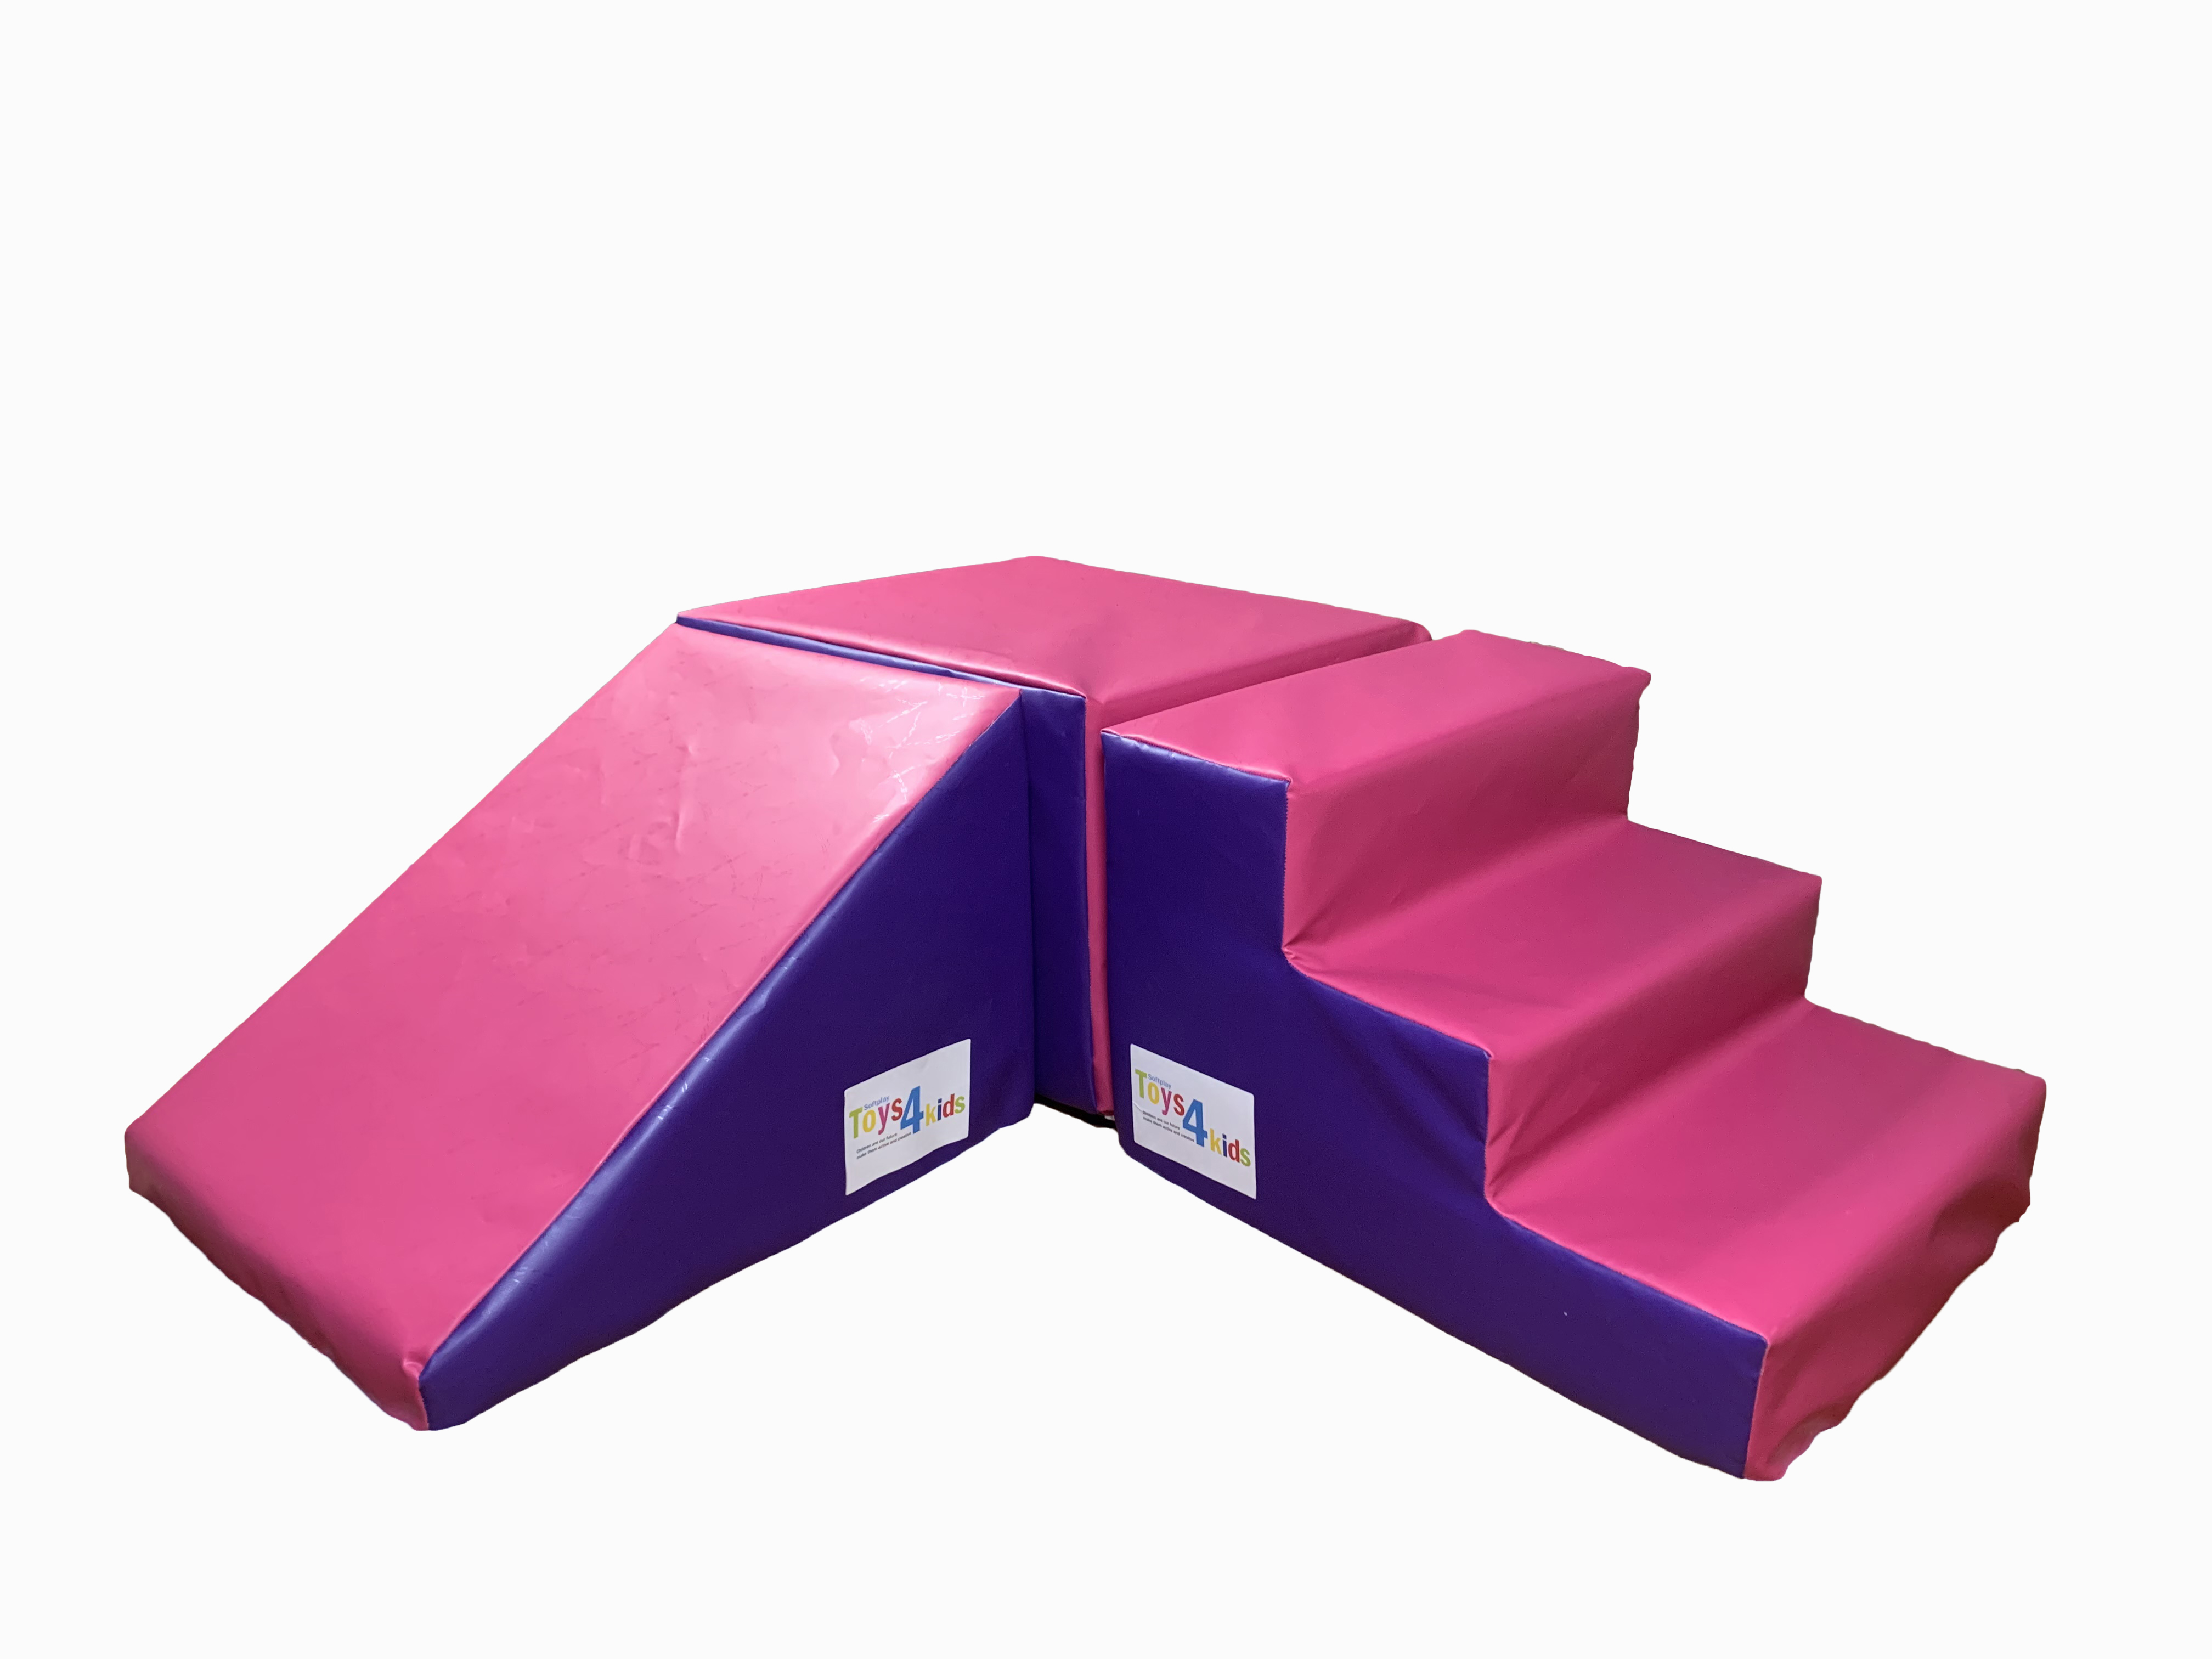 New soft play Step  Slide Cuboid pvc foam toddlers Play set